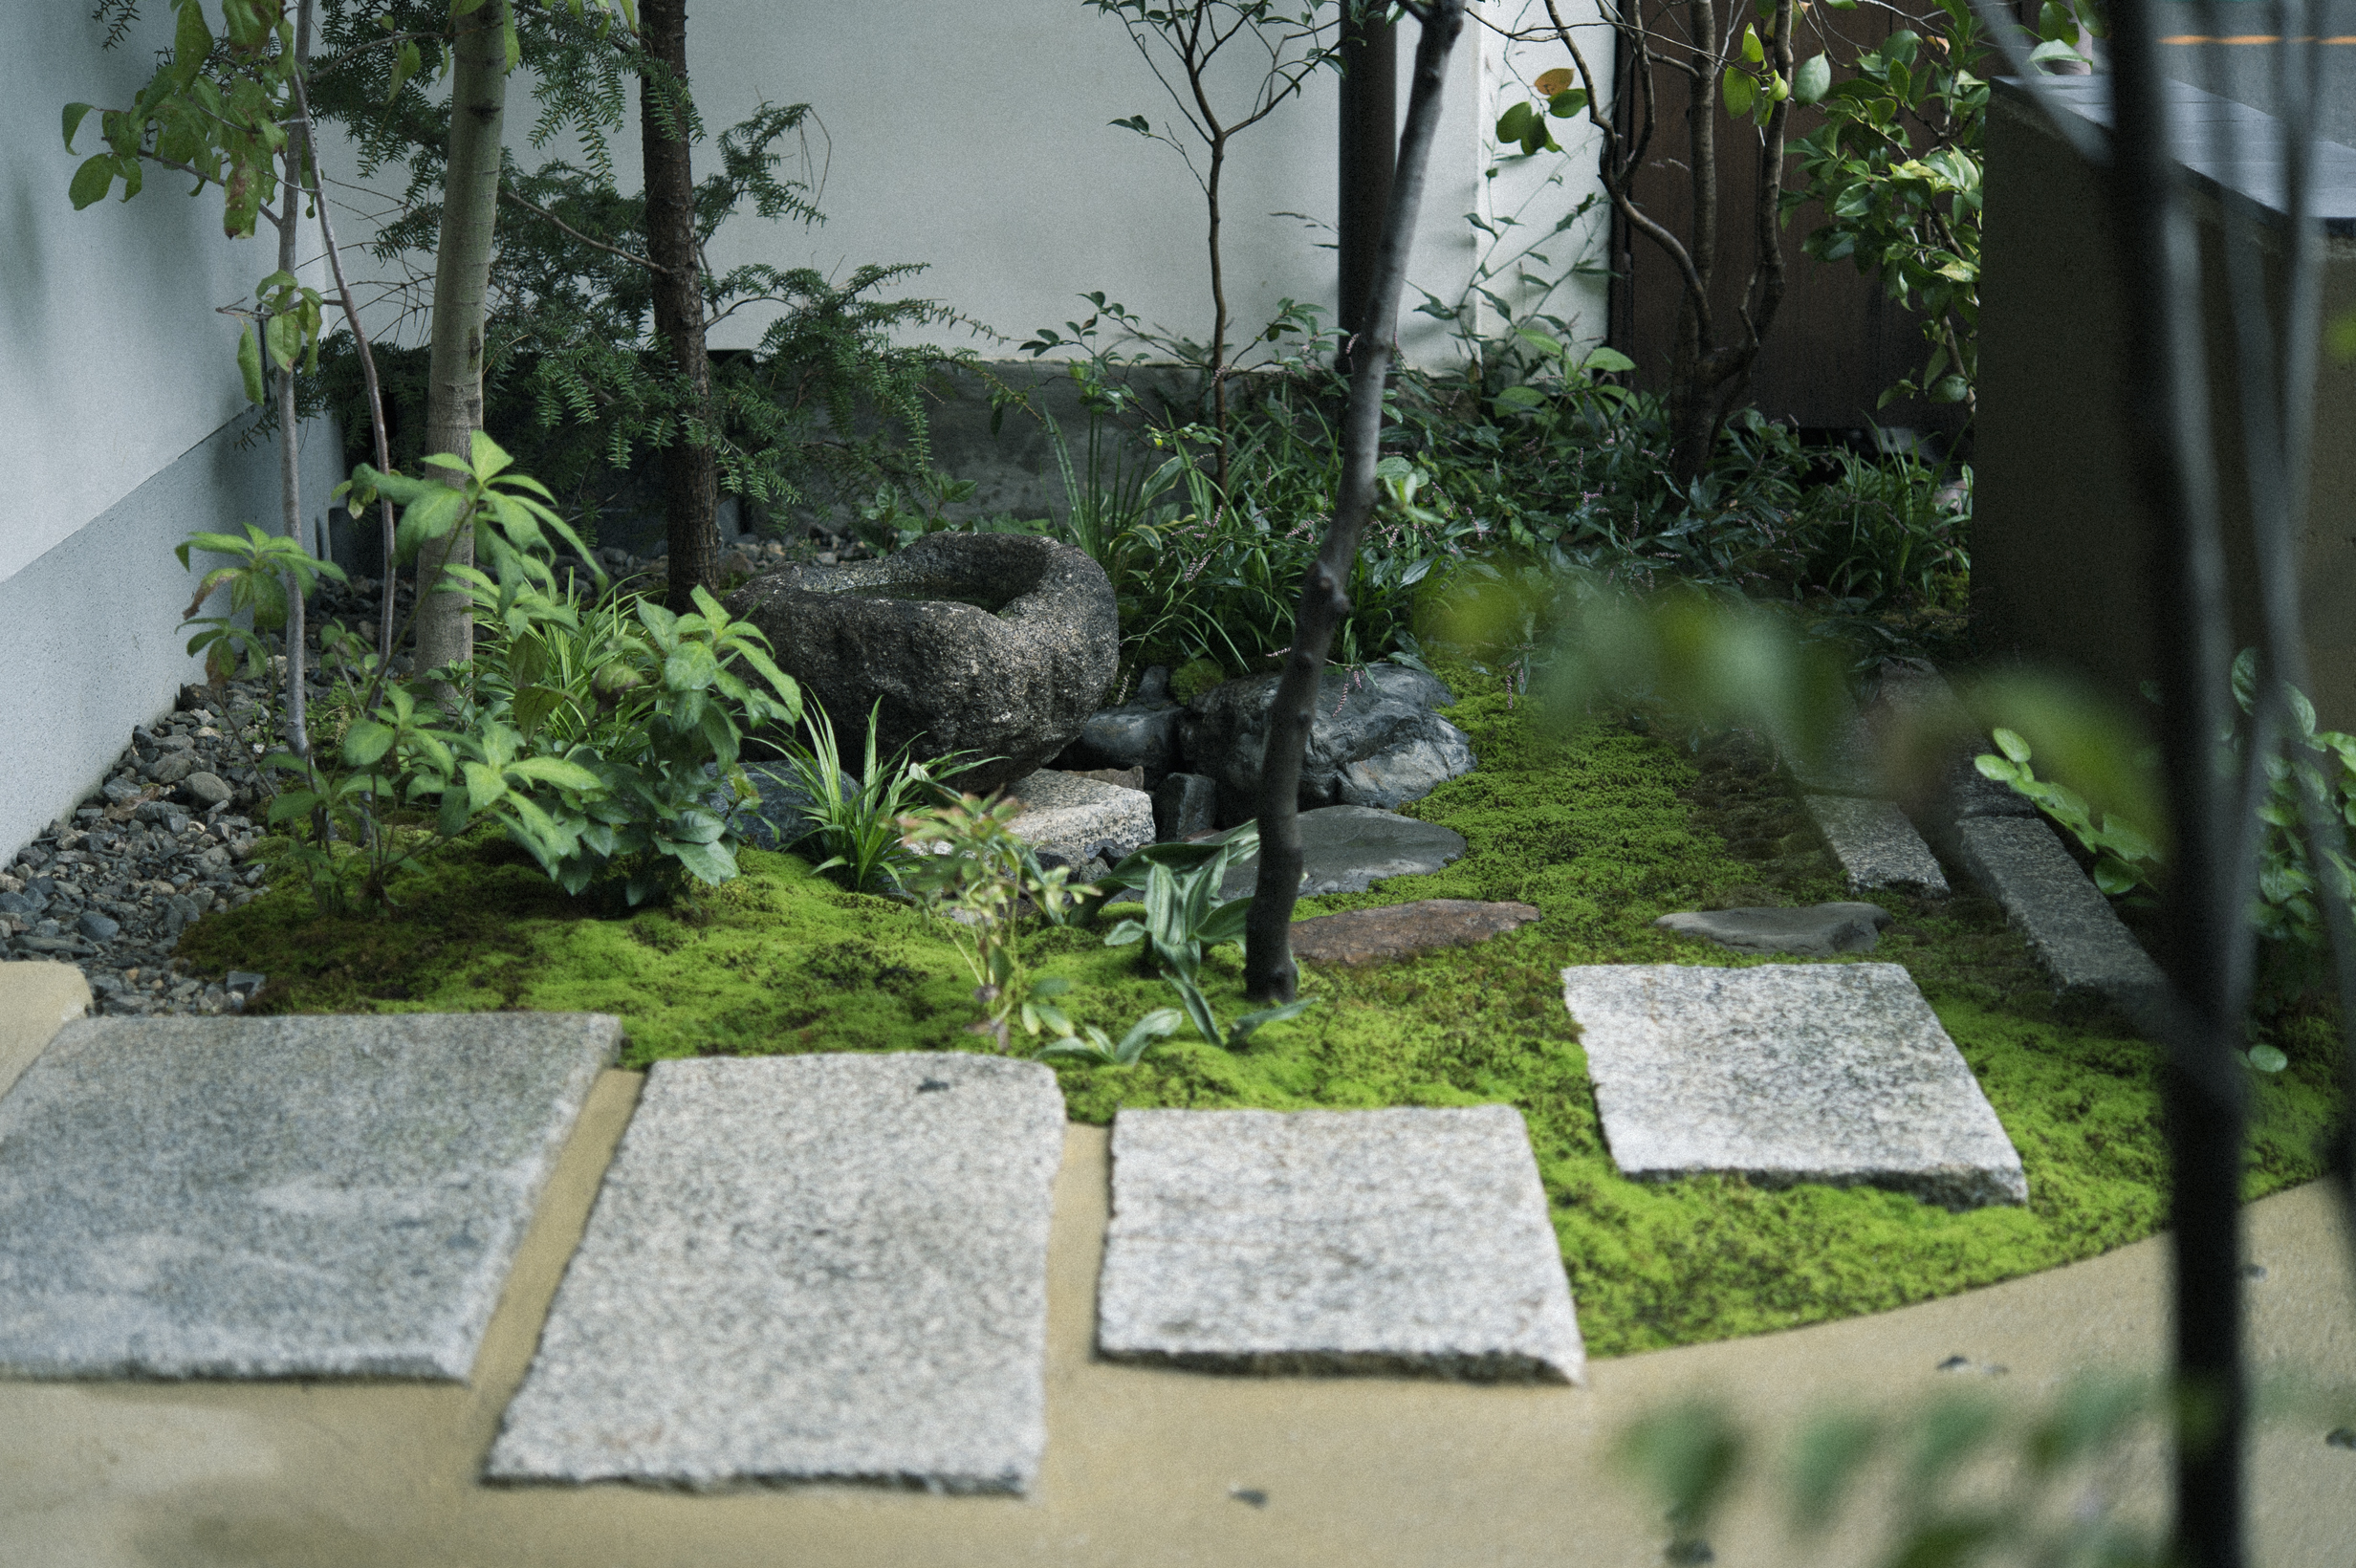 A front garden where you can feel the Kyoto seasons